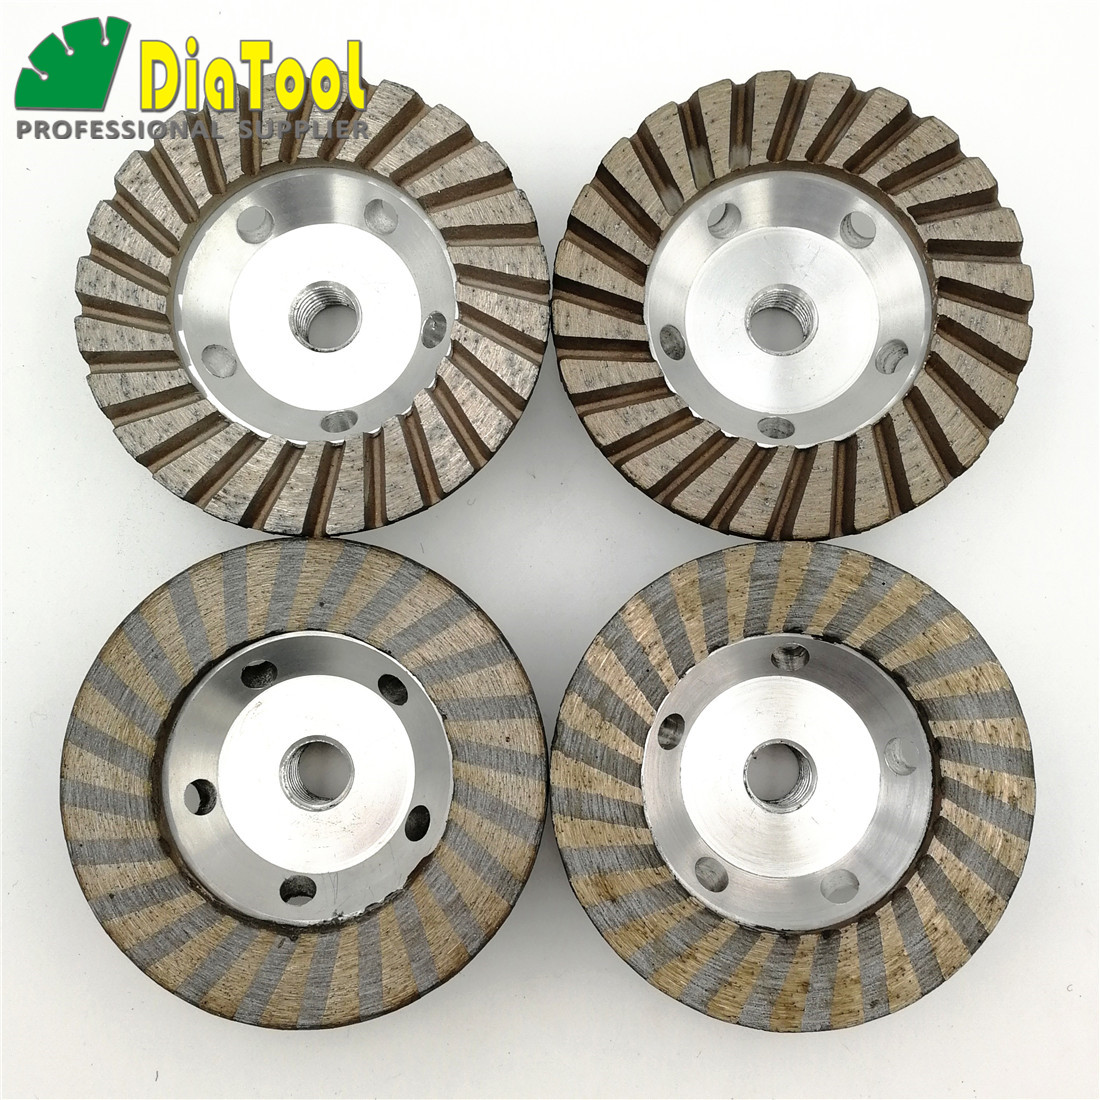 DIATOOL Diameter 100mm Aluminum Based Grinding Cup Wheel 5/8-11 Thread Diamond Grinding disc for Granite marble concrete brock [m14 thread] 5 ncctec diamond aluminum matrix sintered grinding disc 125mm stone turbo grinding cup wheel free shipping